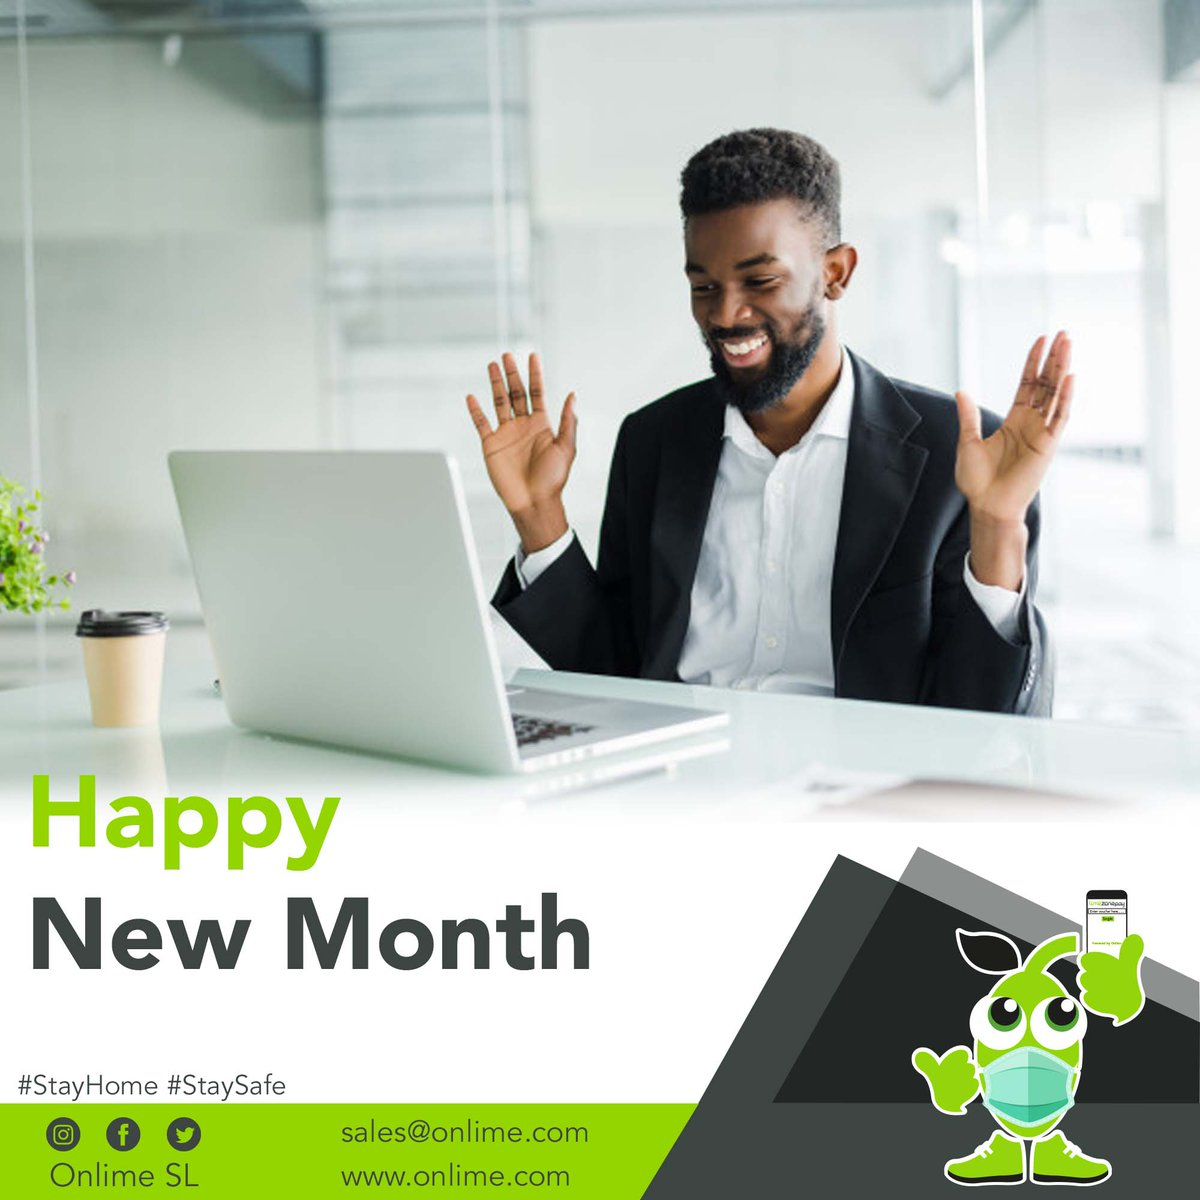 Happy New Month #SaloneTwitter! May God cure all your wounds and take you out of all your problems. Remain blessed and #StaySafe  #Freetown #SierraLeone #StayHome https://t.co/Mpy6BLPn8E